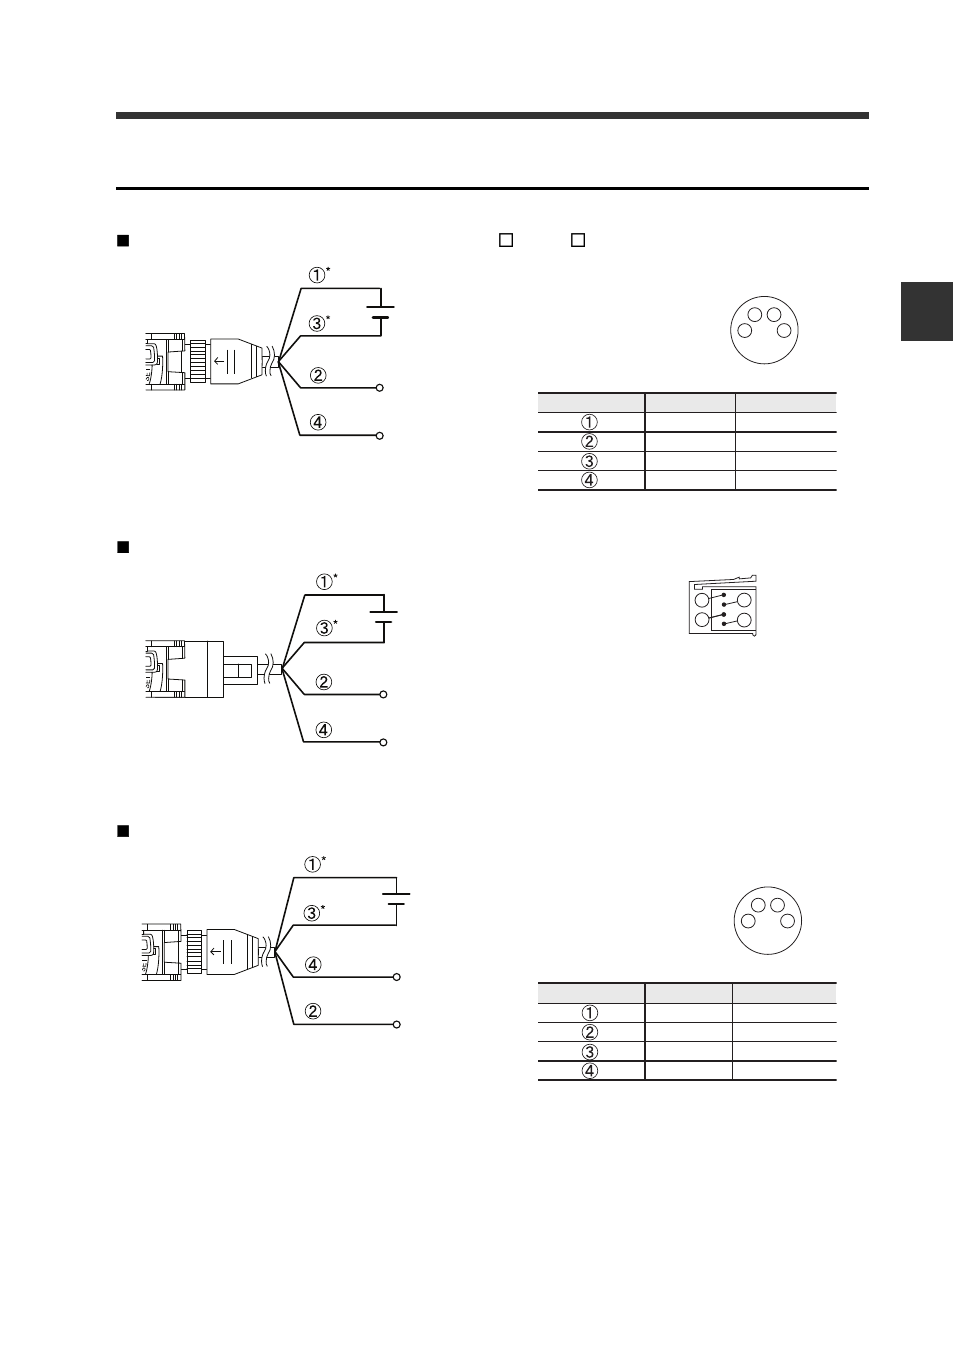 wiring diagrams for m8 e con connector types keyence fs. Black Bedroom Furniture Sets. Home Design Ideas